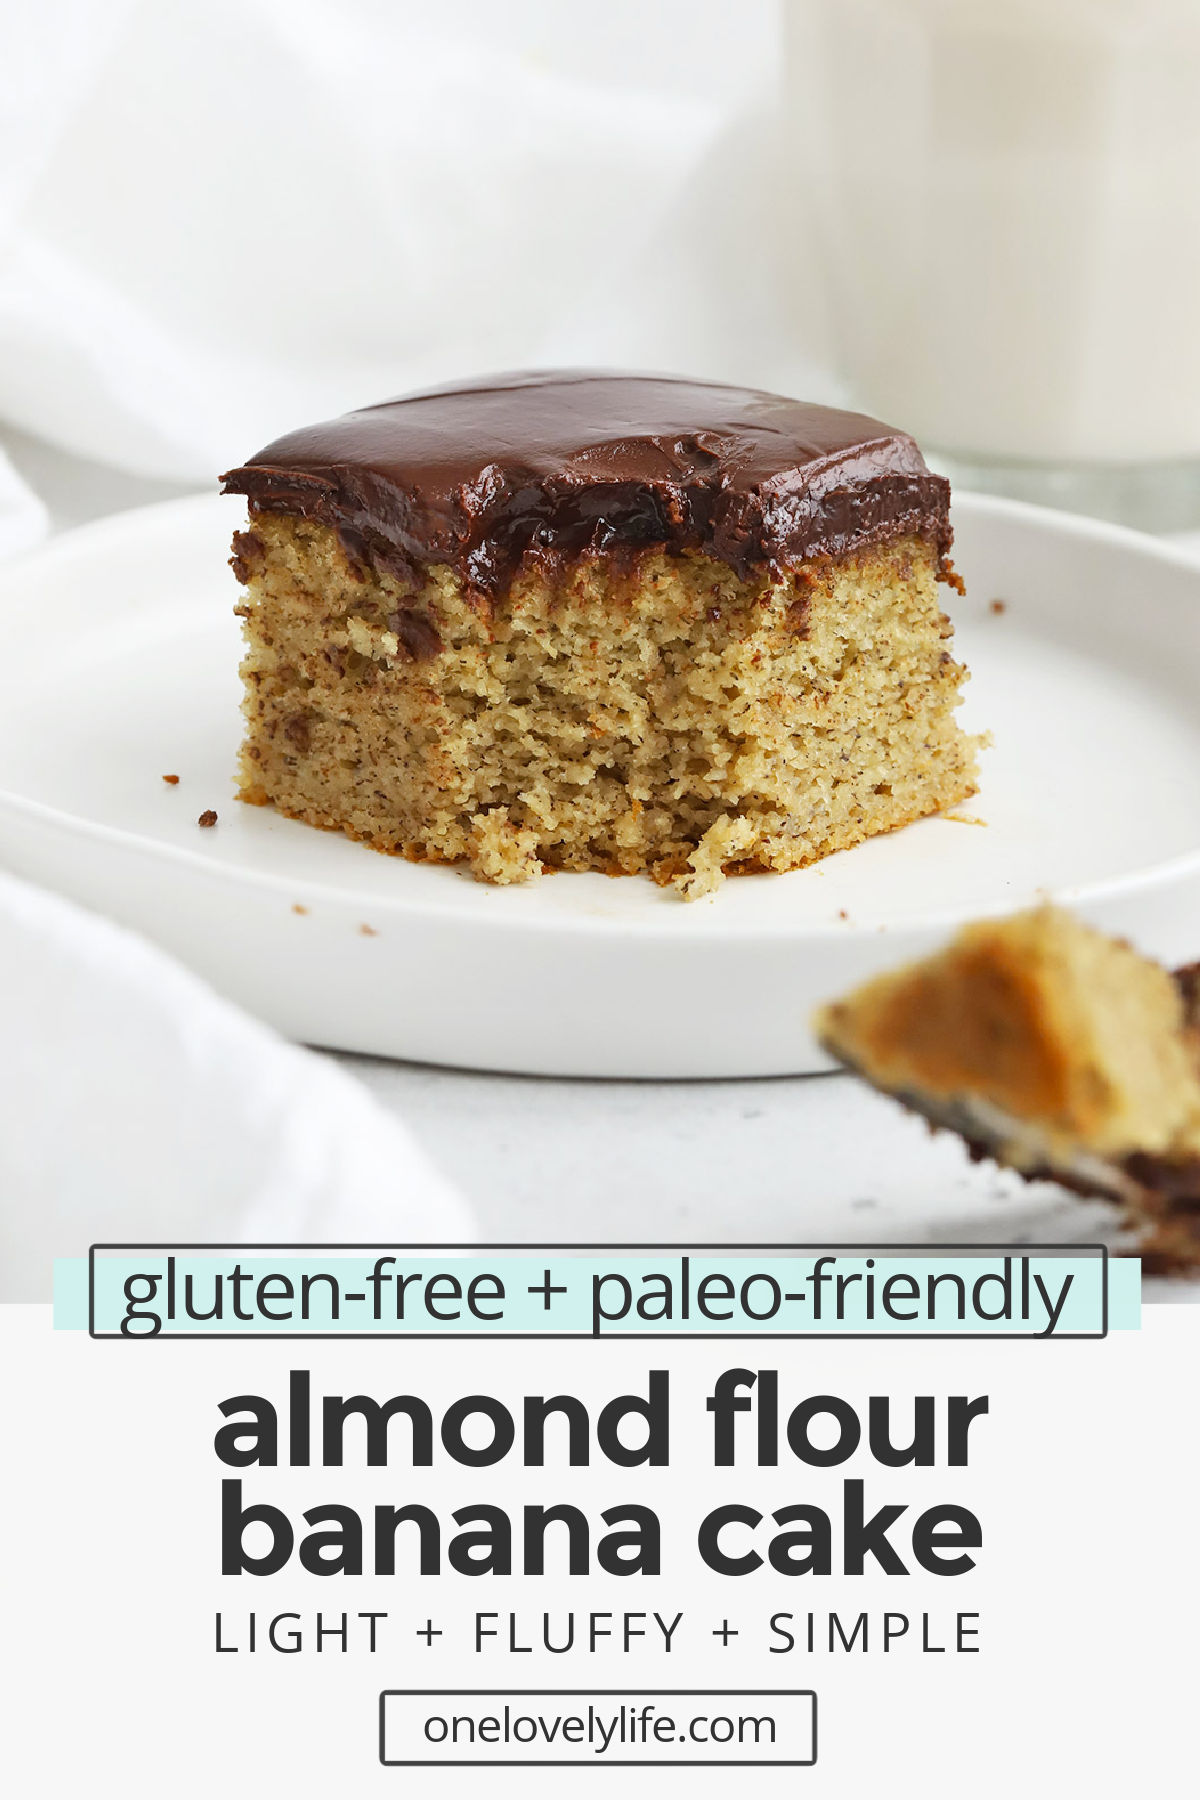 Almond Flour Banana Cake - This easy gluten-free banana cake with chocolate ganache is the perfect way to use up overripe bananas! (Healthy, paleo friendly, and absolutely amazing!) // Healthy Banana Cake // Paleo Banana Cake // Gluten Free Banana Cake // Banana Cake recipe // Almond Flour cake // smash cake #glutenfree #cake #bananacake #almondflour #paleo